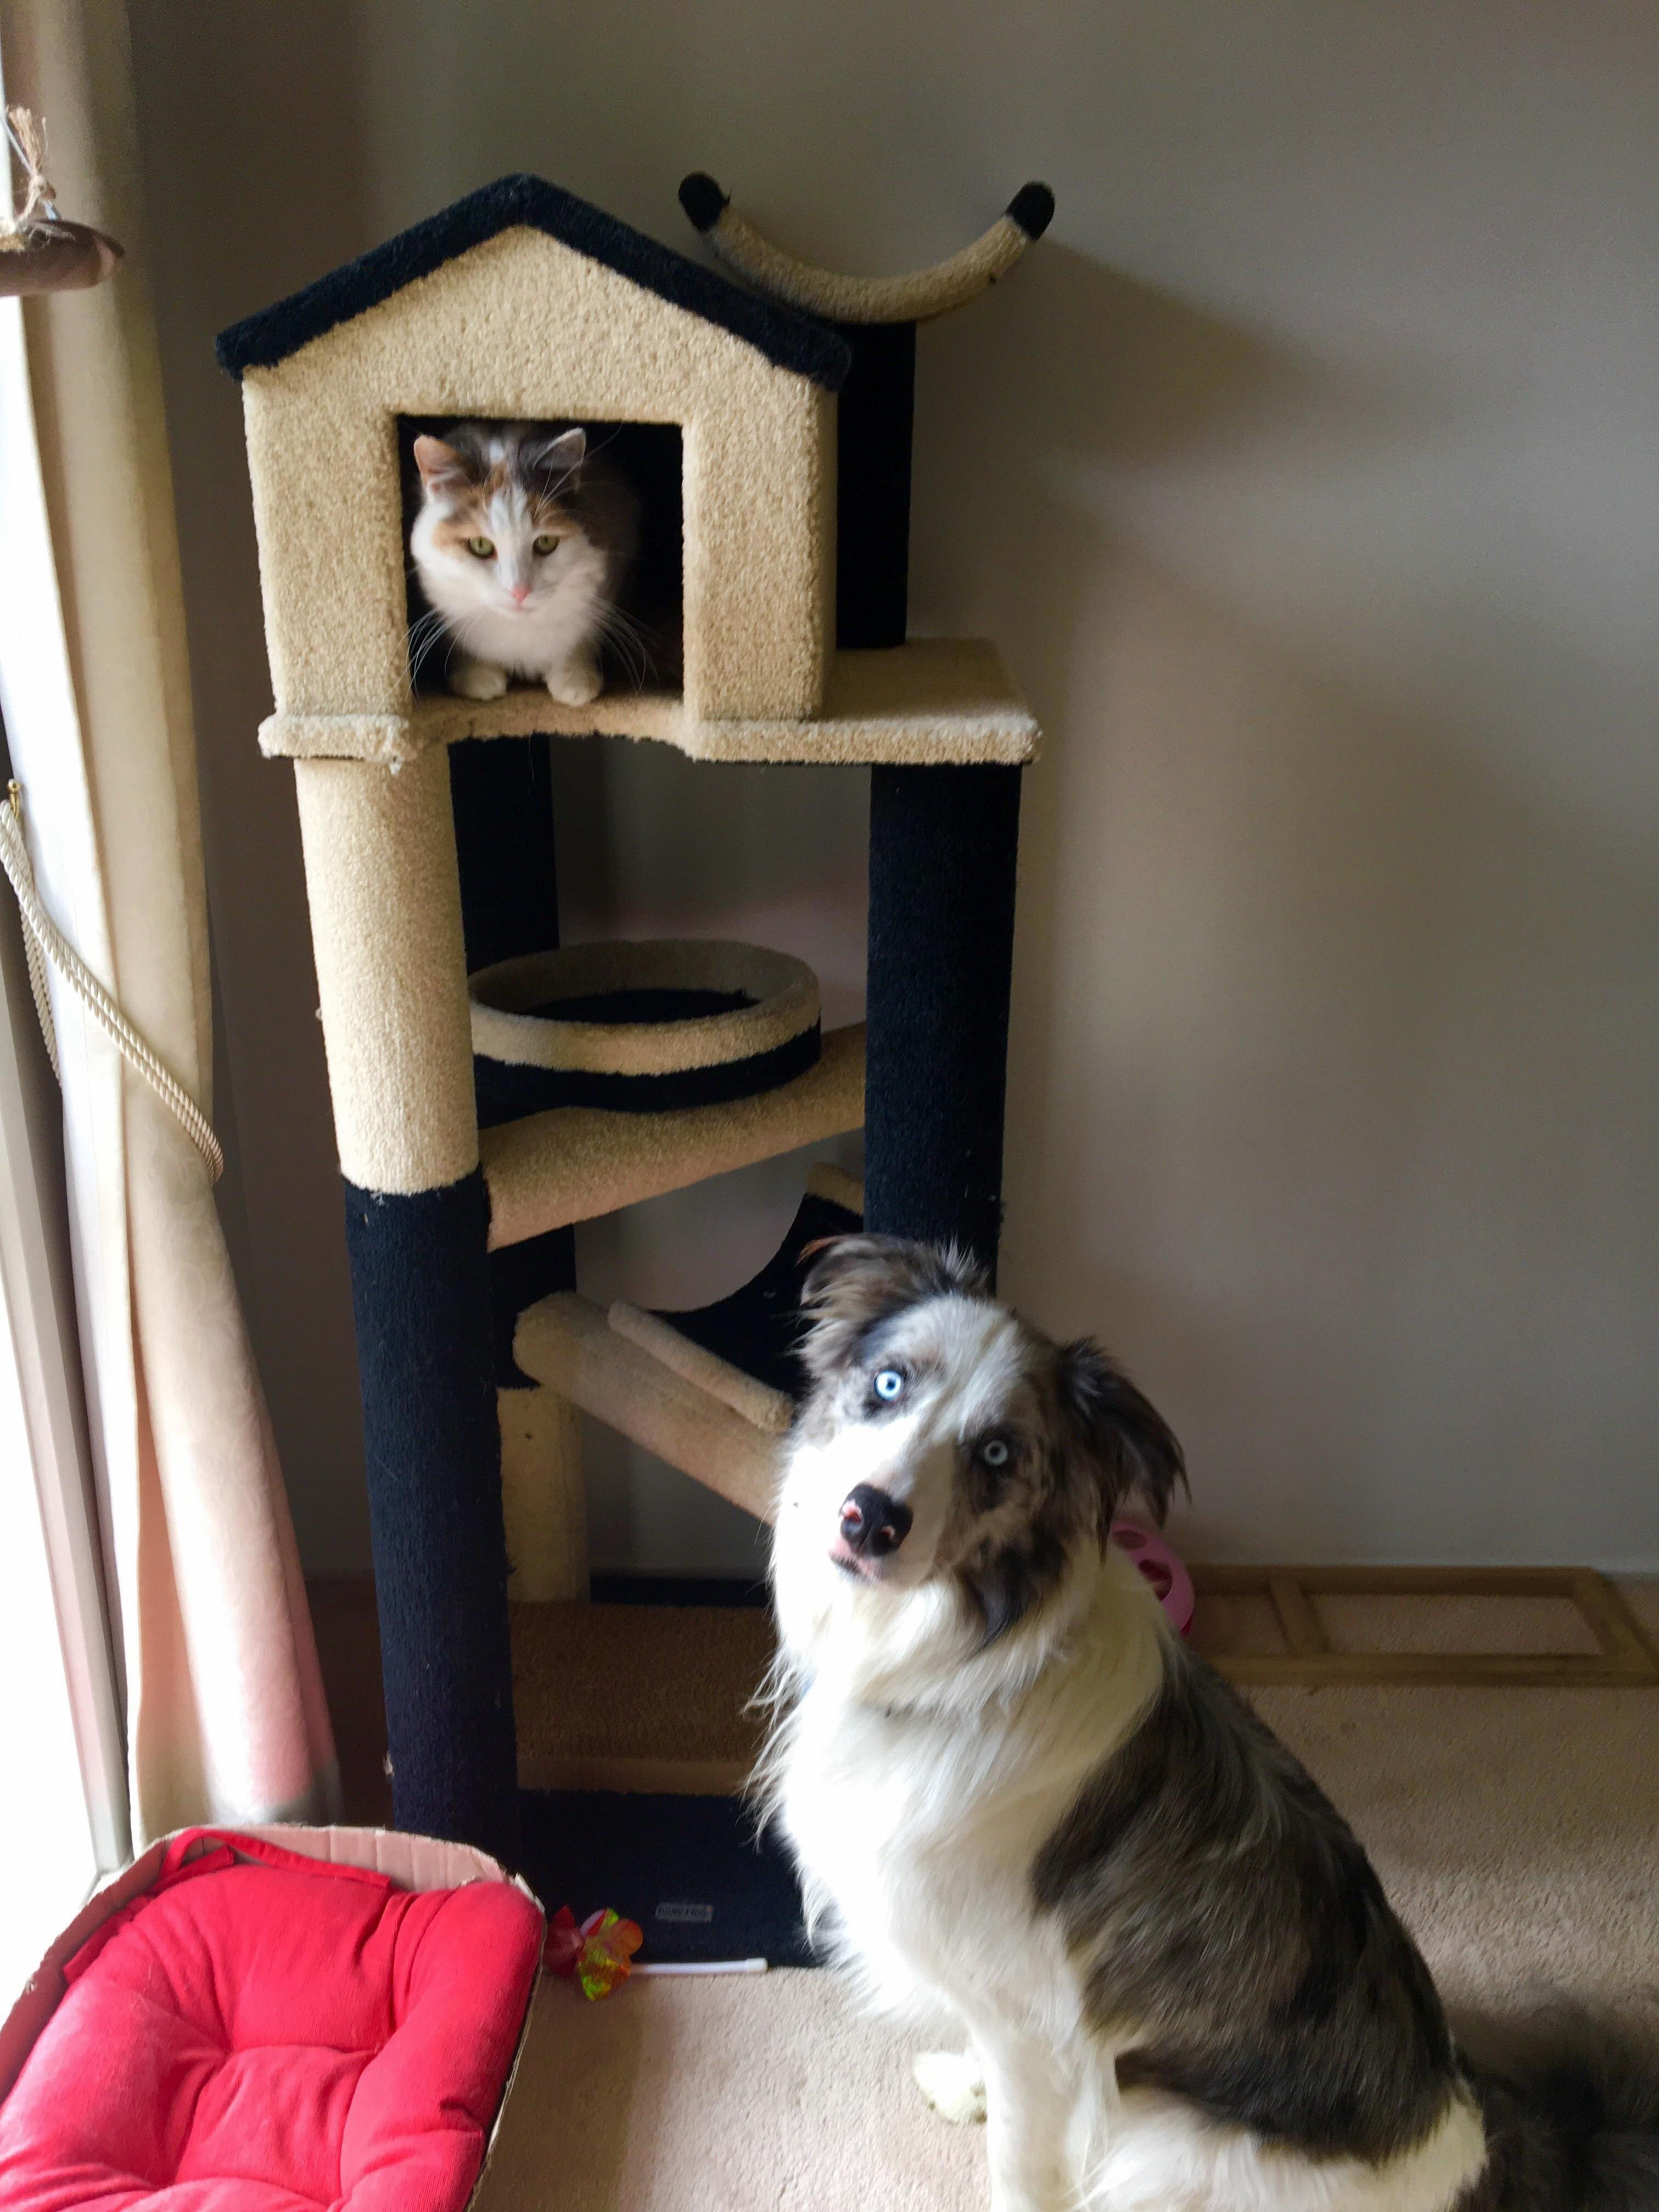 Hates other cats tolerates dogs